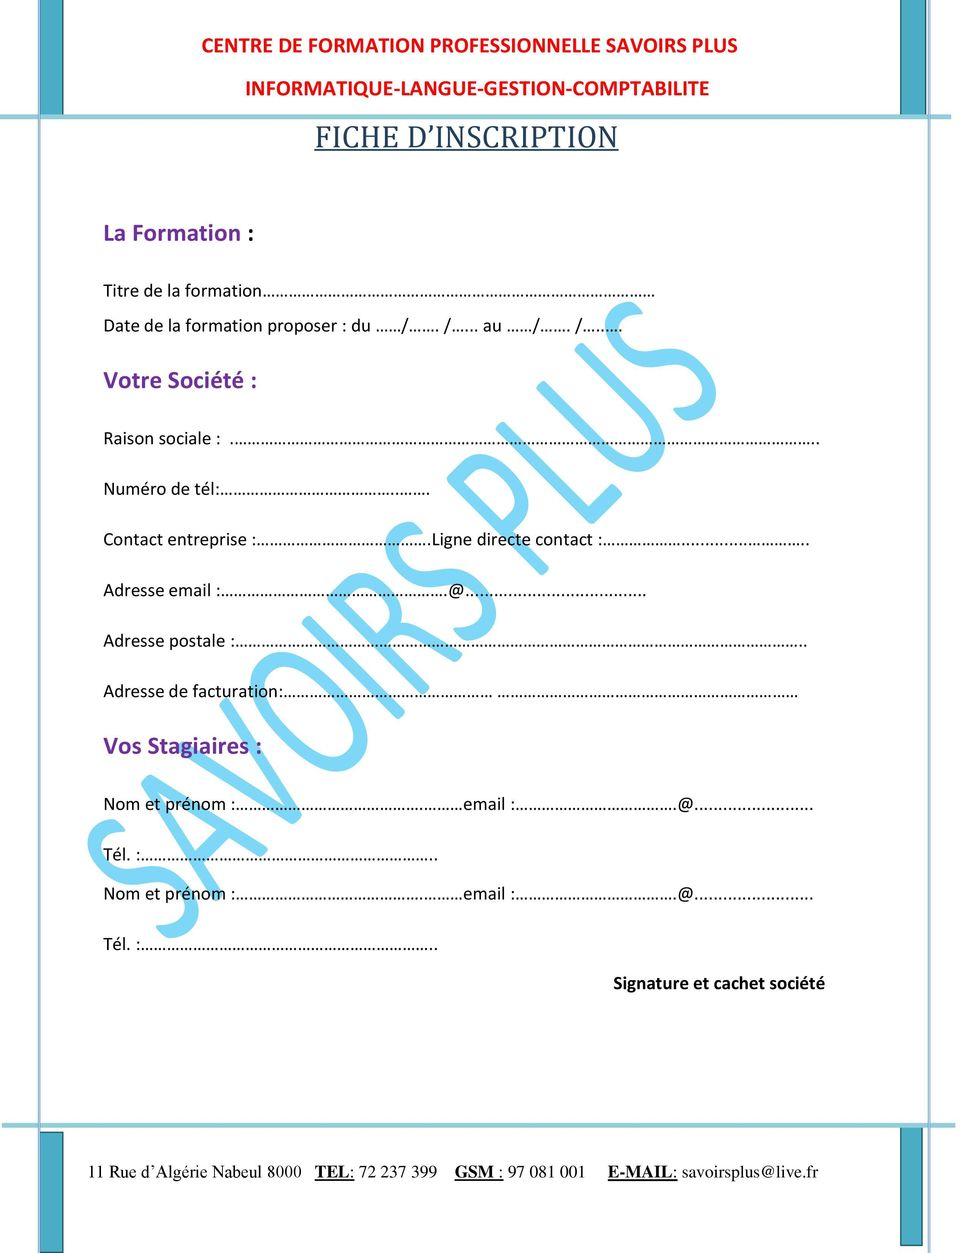 Ligne directe contact :..... Adresse email :.@... Adresse postale :.